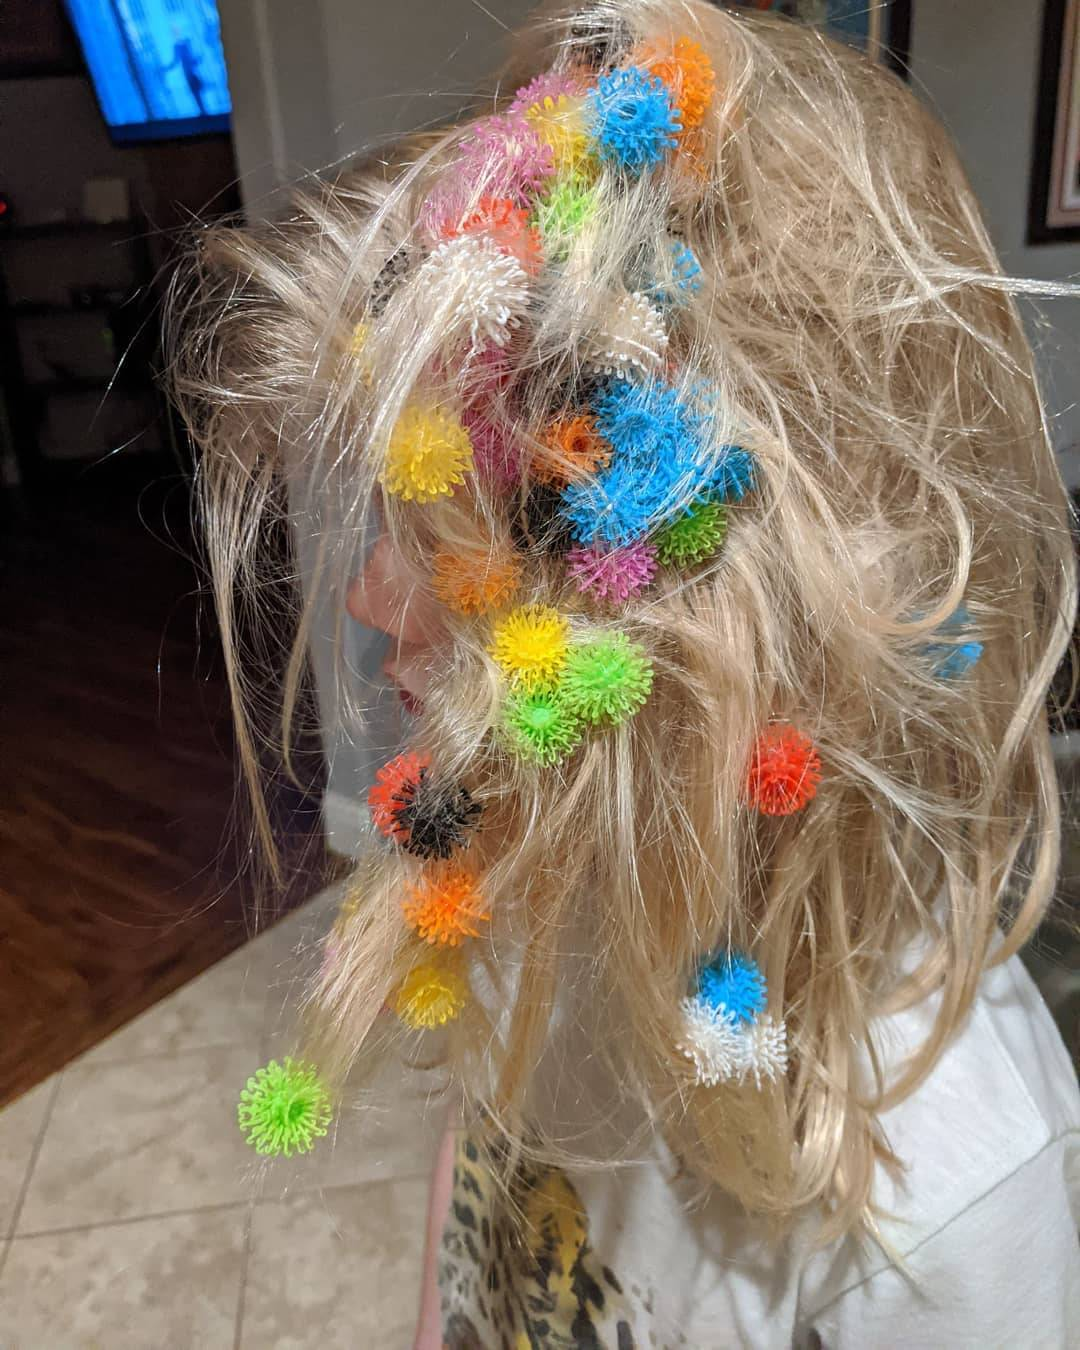 sticky toys stuck in kid's hair